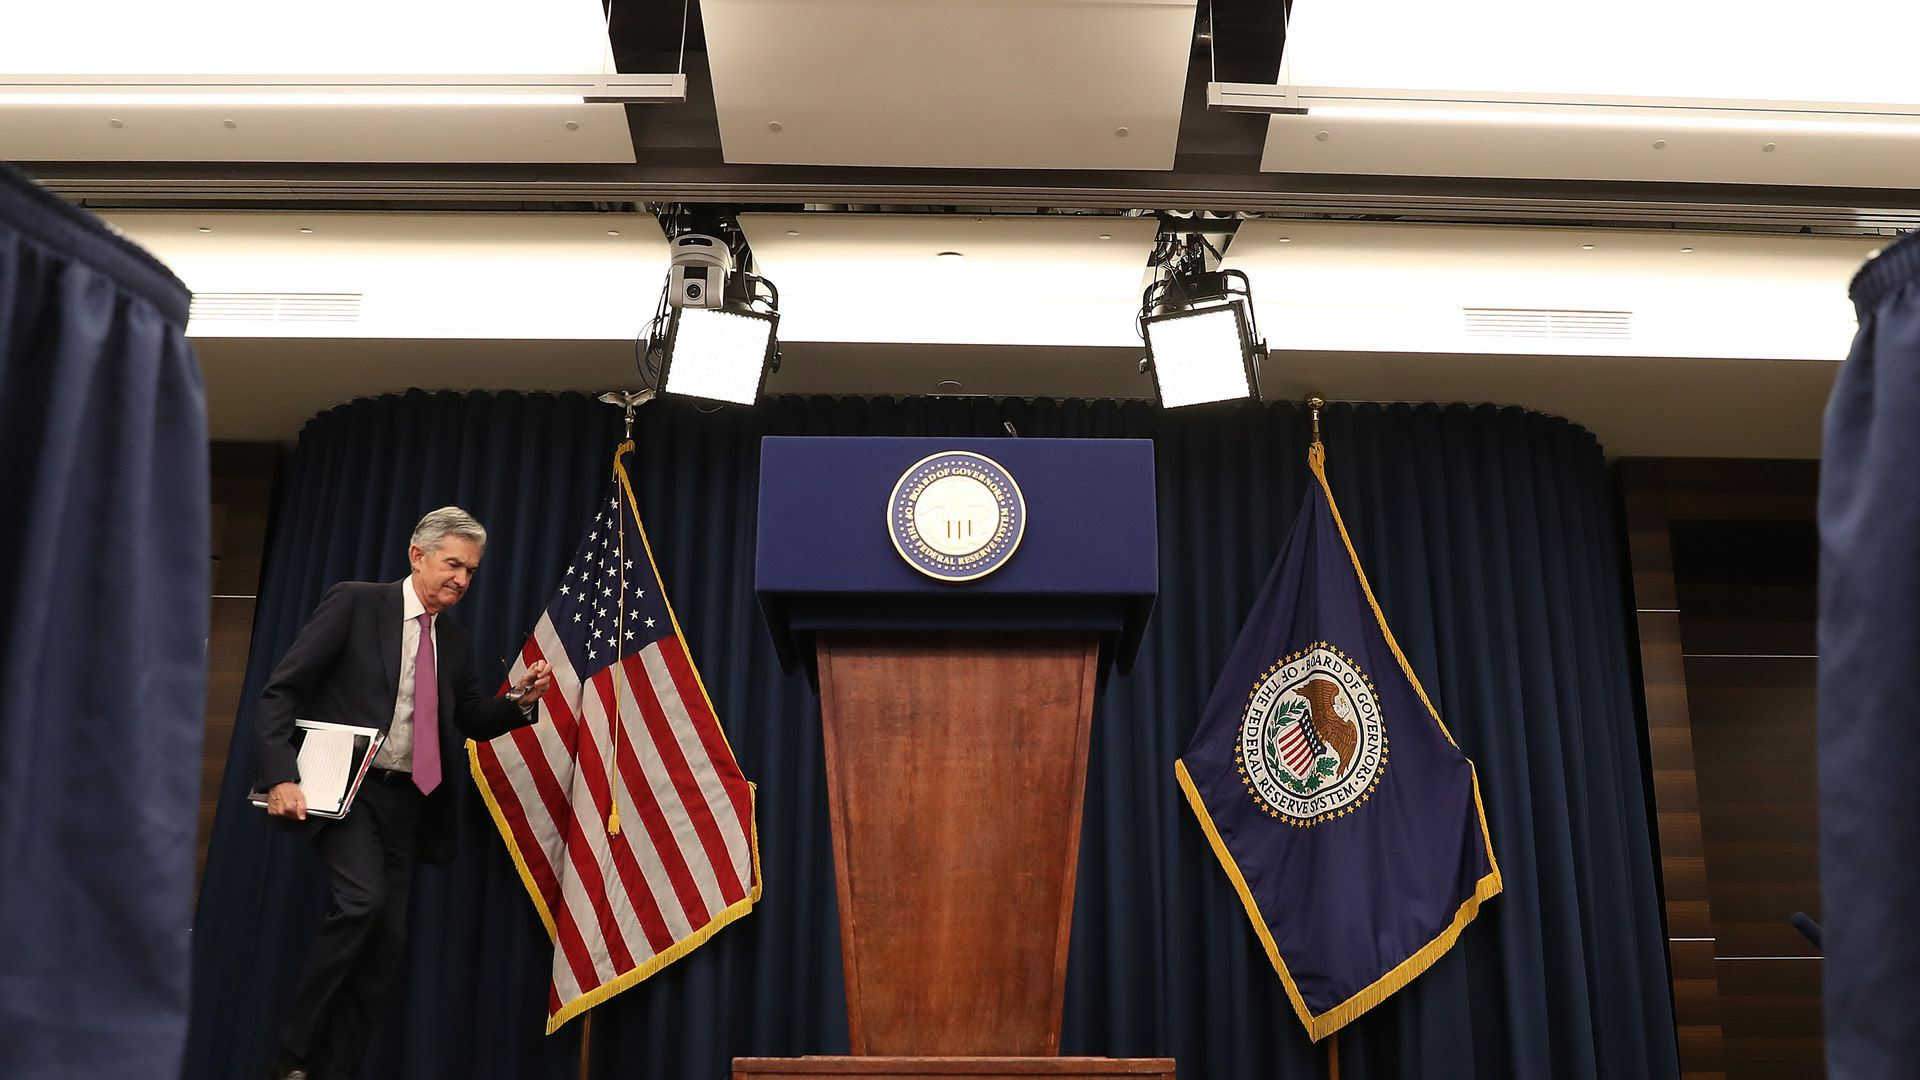 Federal Reserve Board Chairman Jerome Powell walks up to speak during a news conference. Photo: Mark Wilson/Getty Images